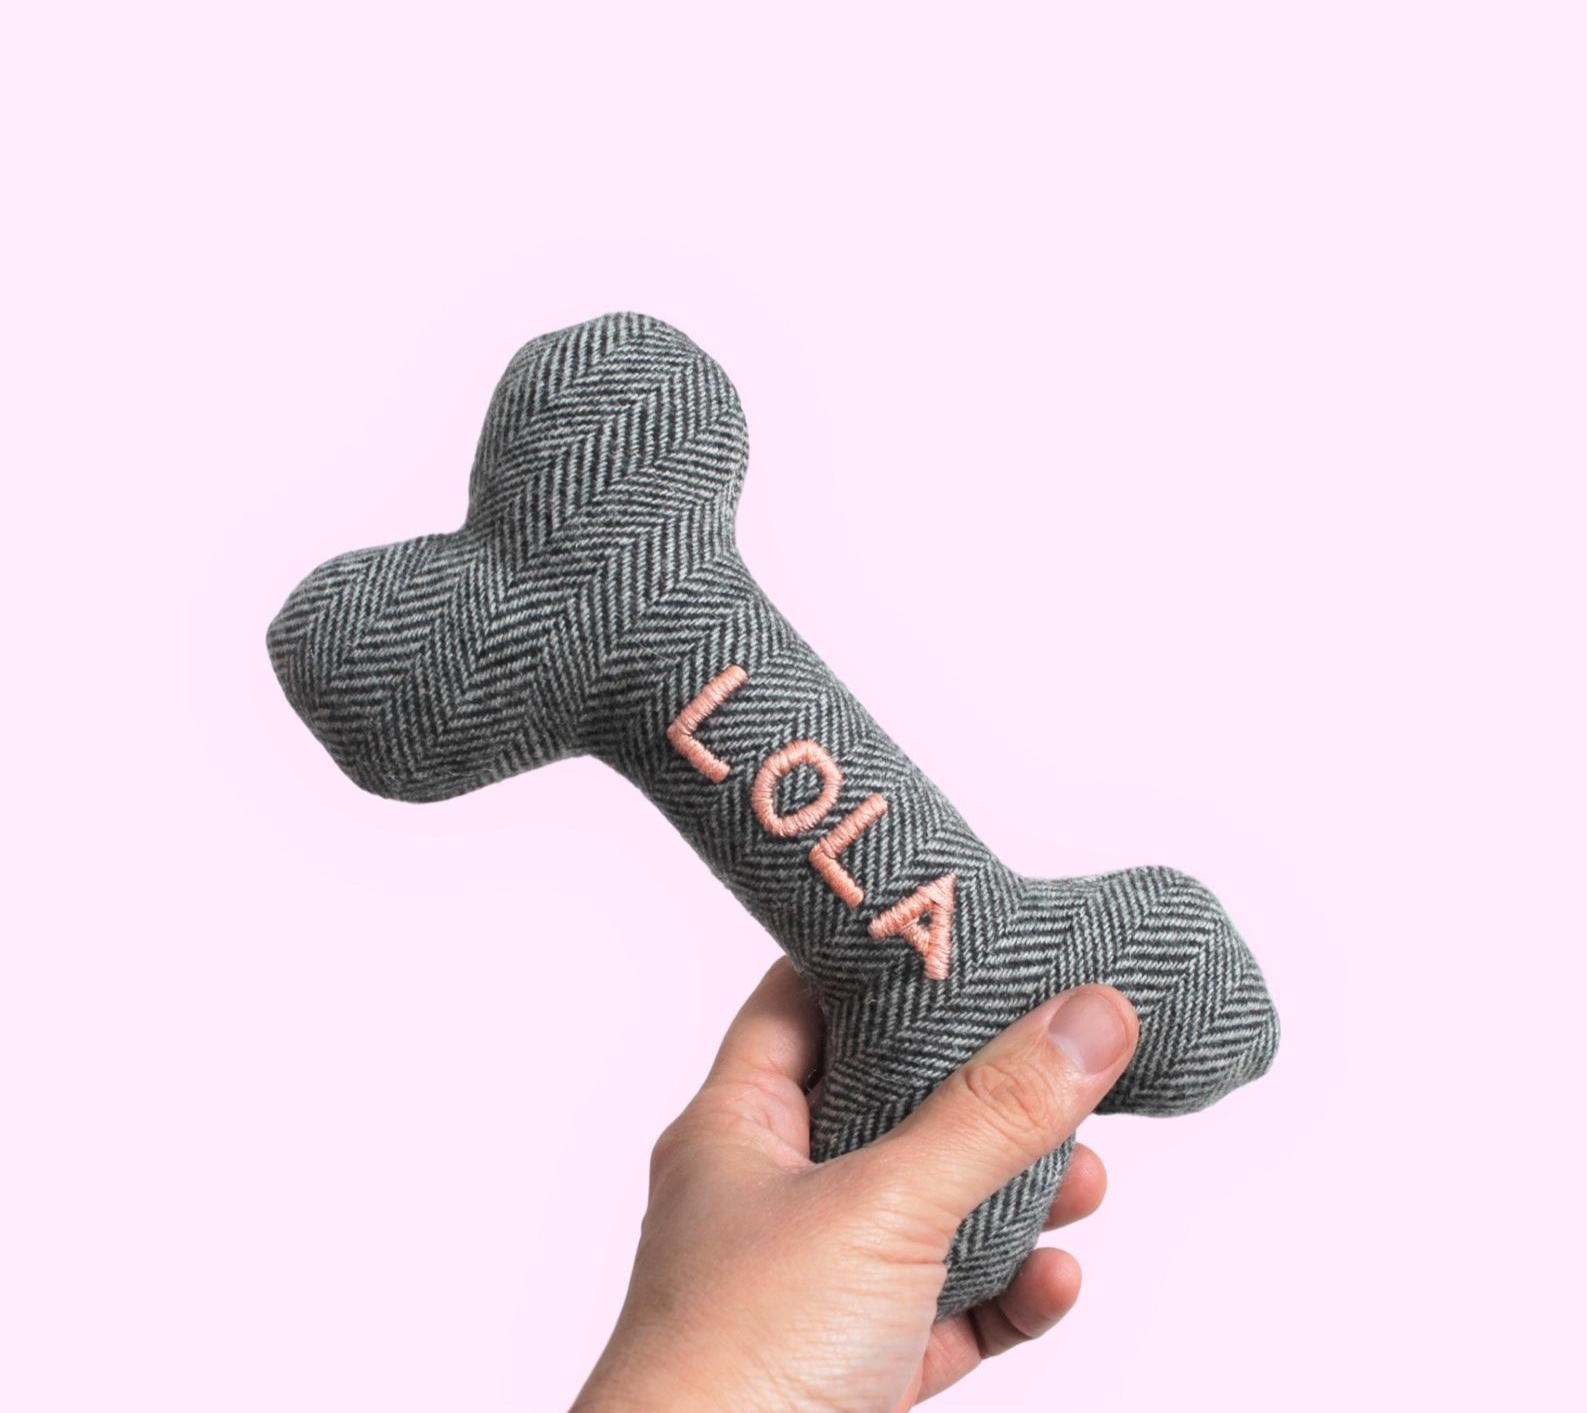 Dog Personalized Toy By Hither Rabbit